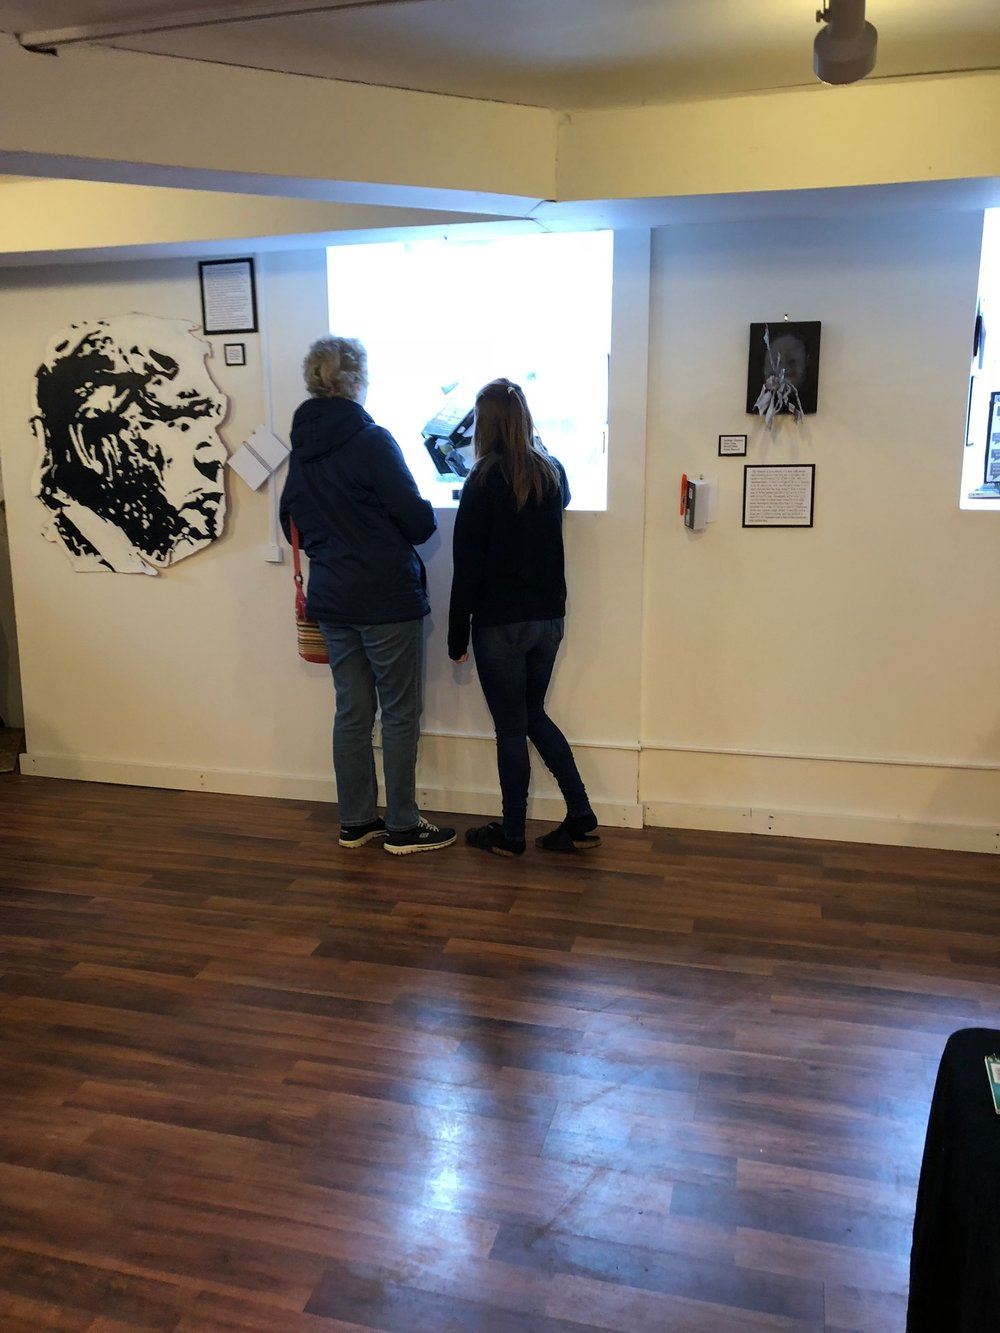 The exhibit gave parents of the student artists insight into what pressures the students were facing. (Photo: Jessica Sierk)